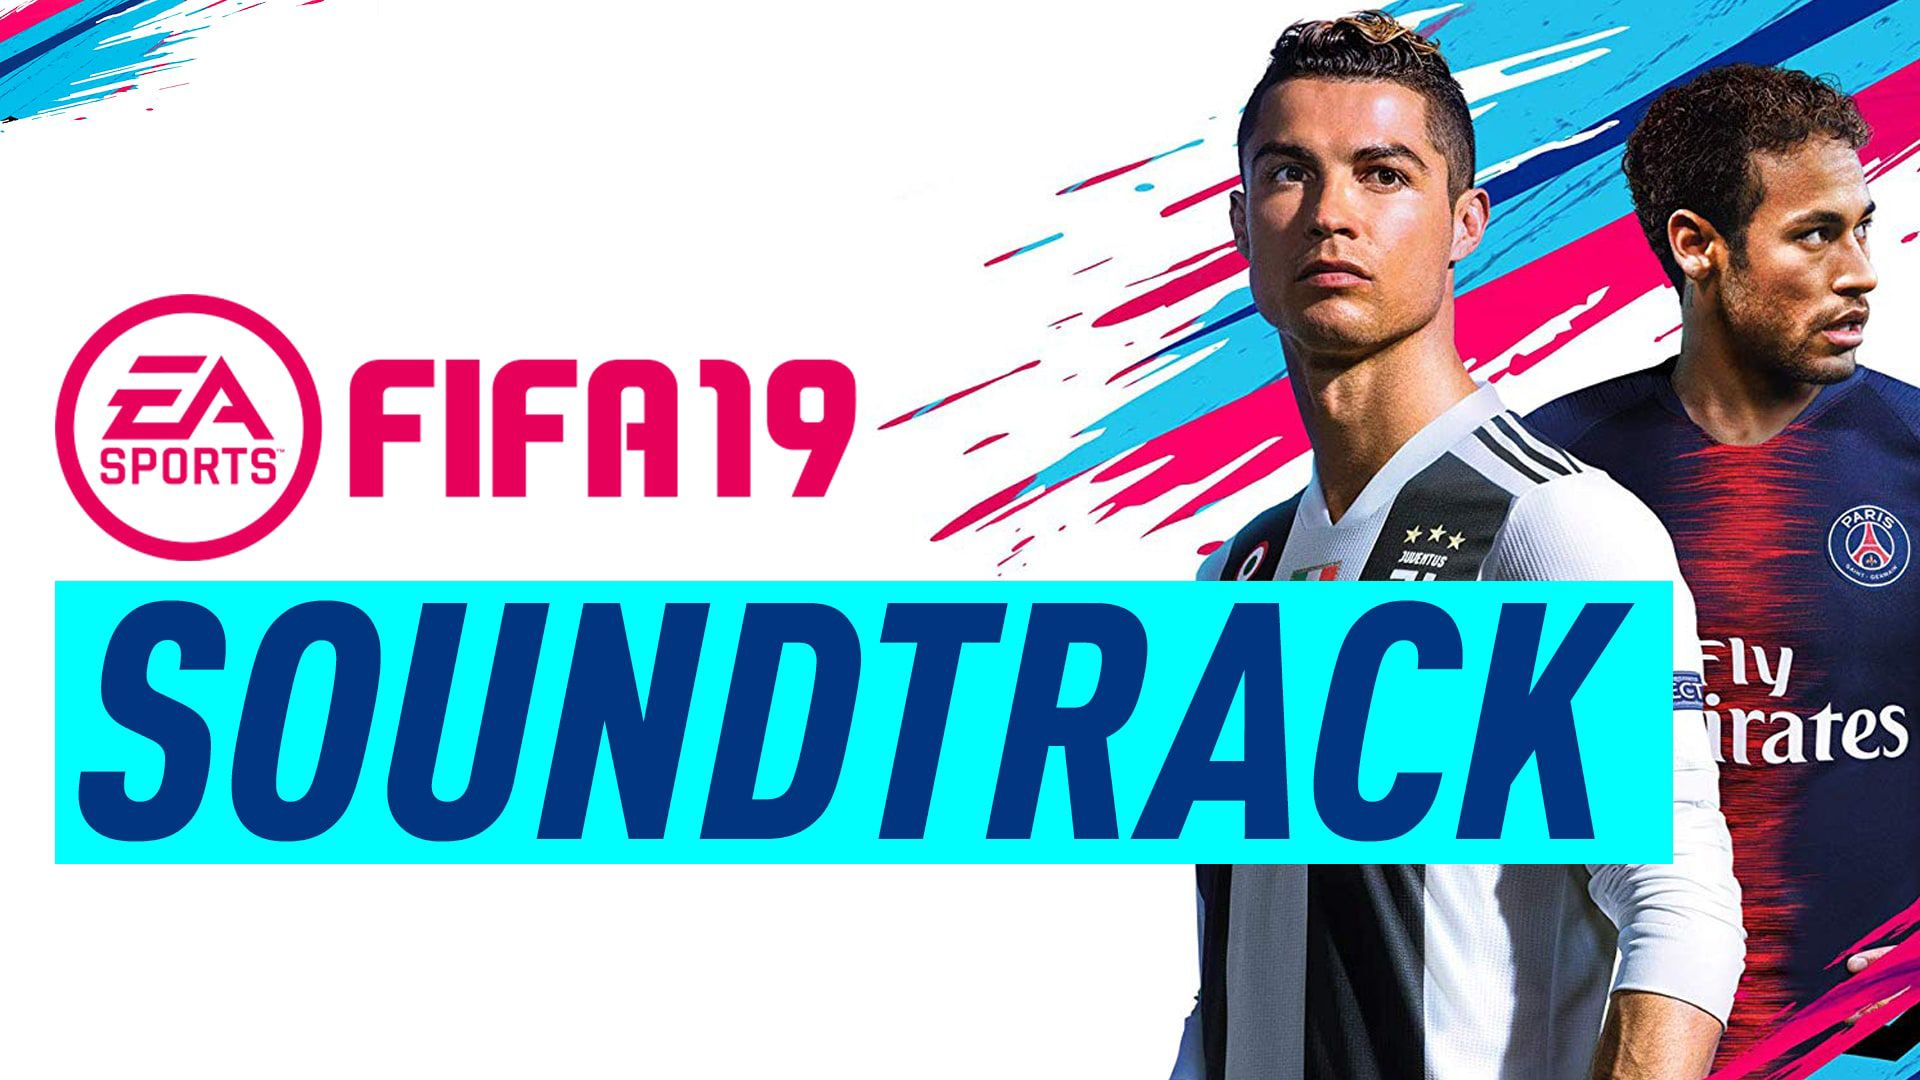 Fifa 19 Soundtrack Official Fifa 19 Soundtrack Released 29 New Songs News Songs Soundtrack Songs